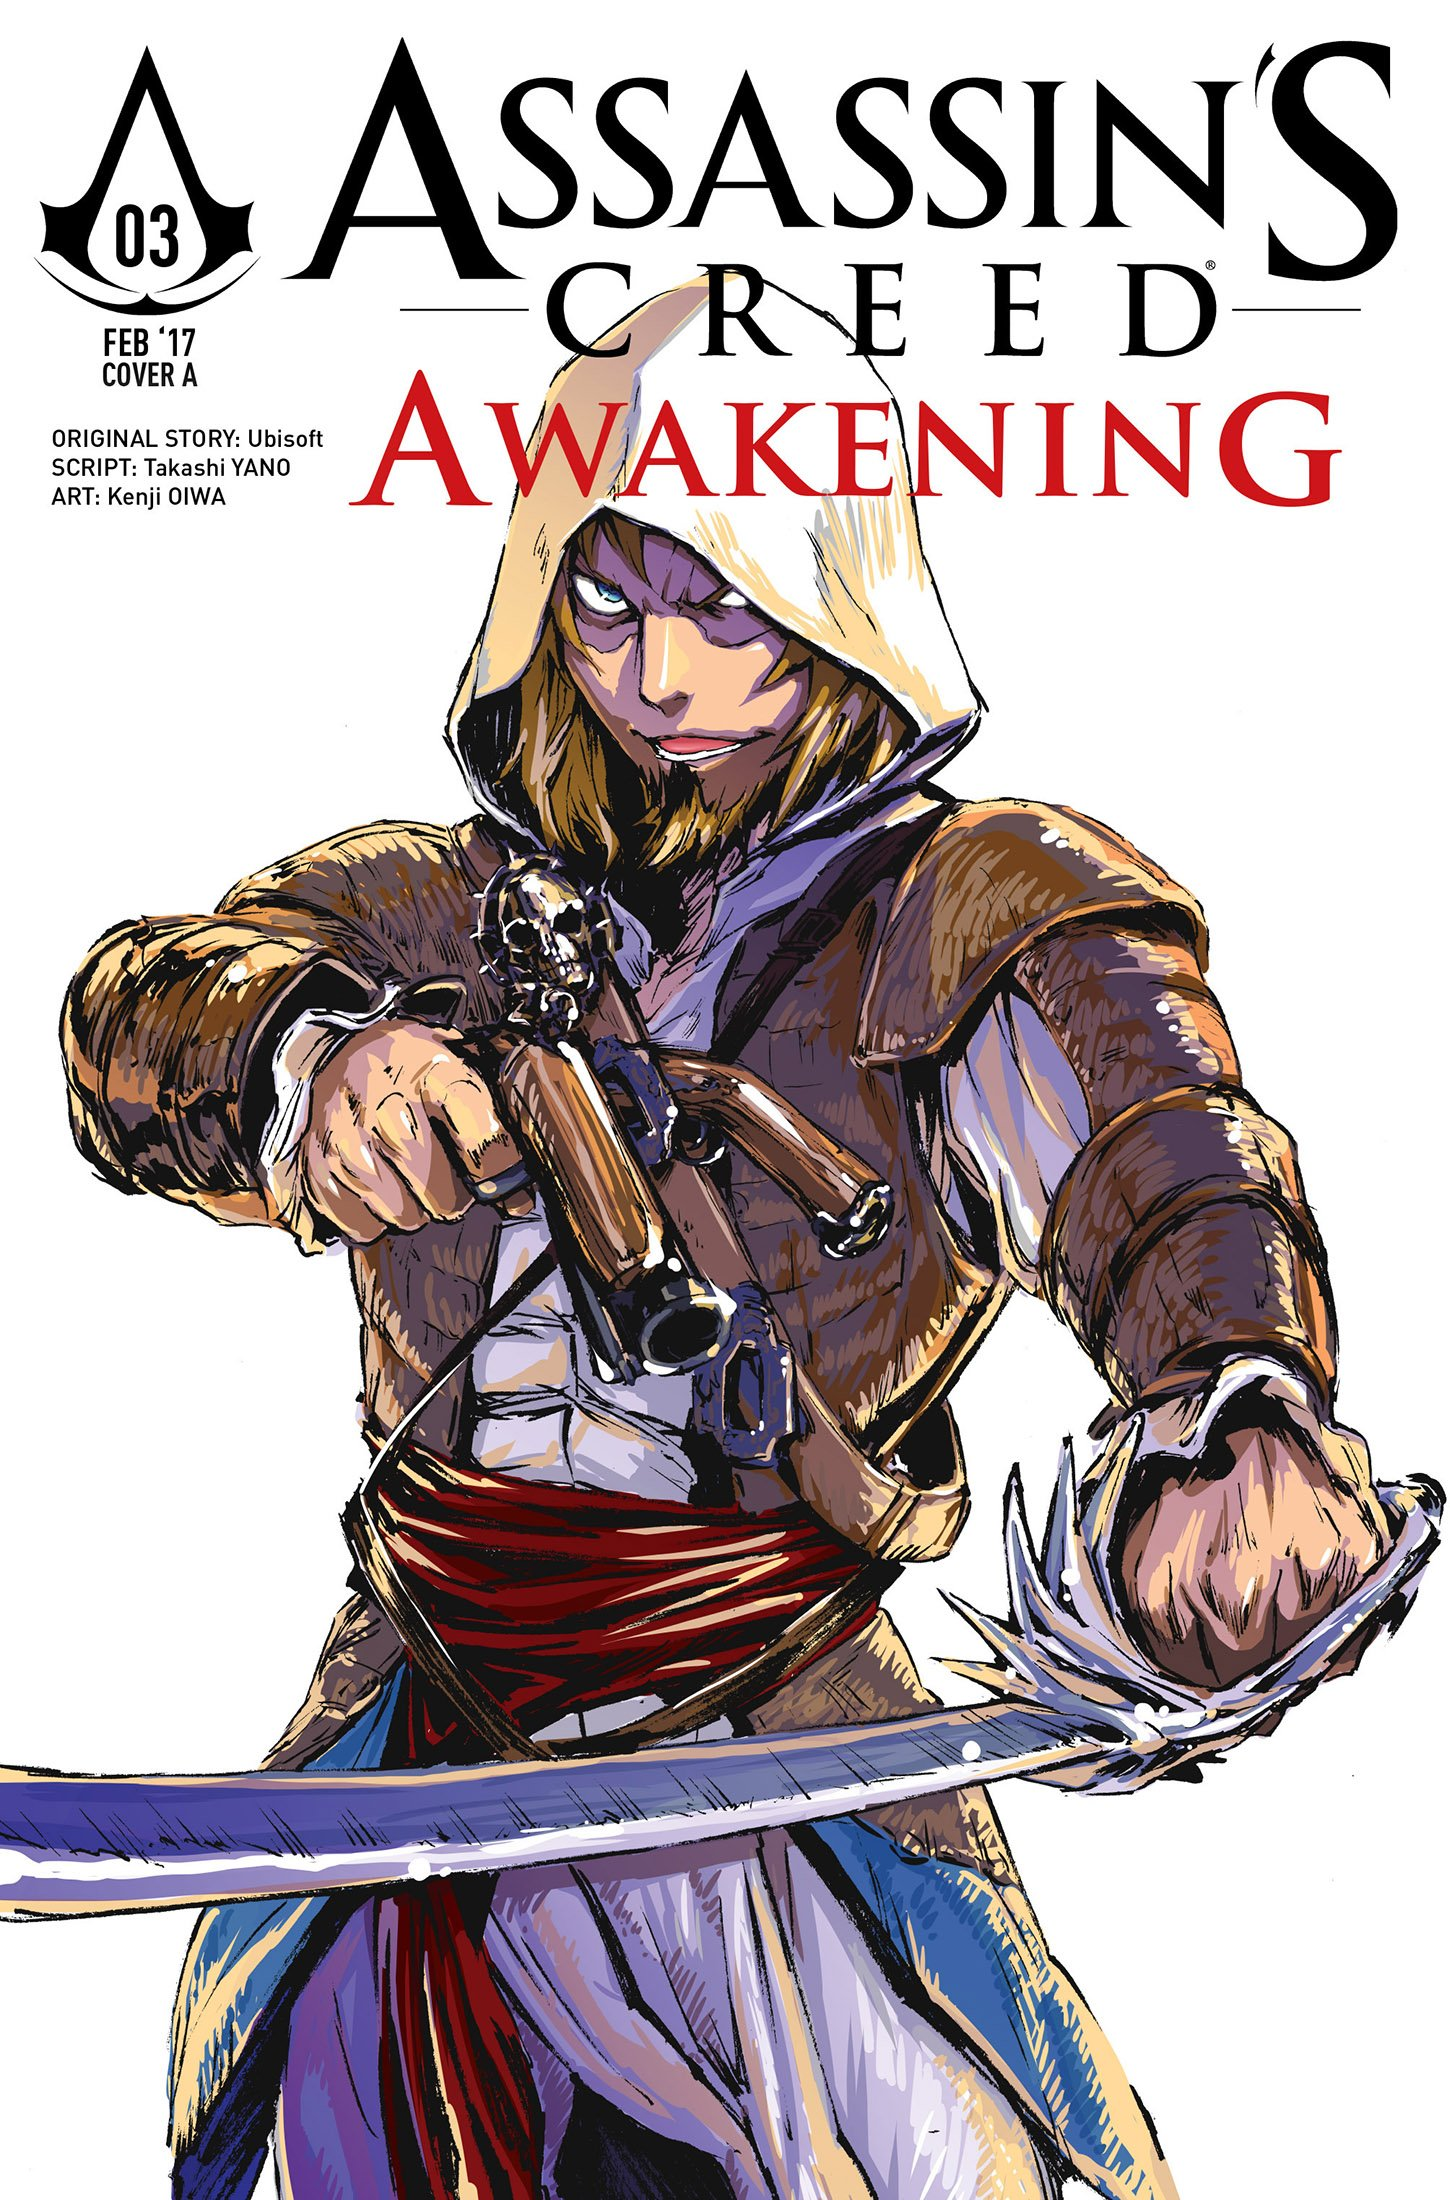 Assassin's Creed - Awakening 03 (February 2017) (cover a)